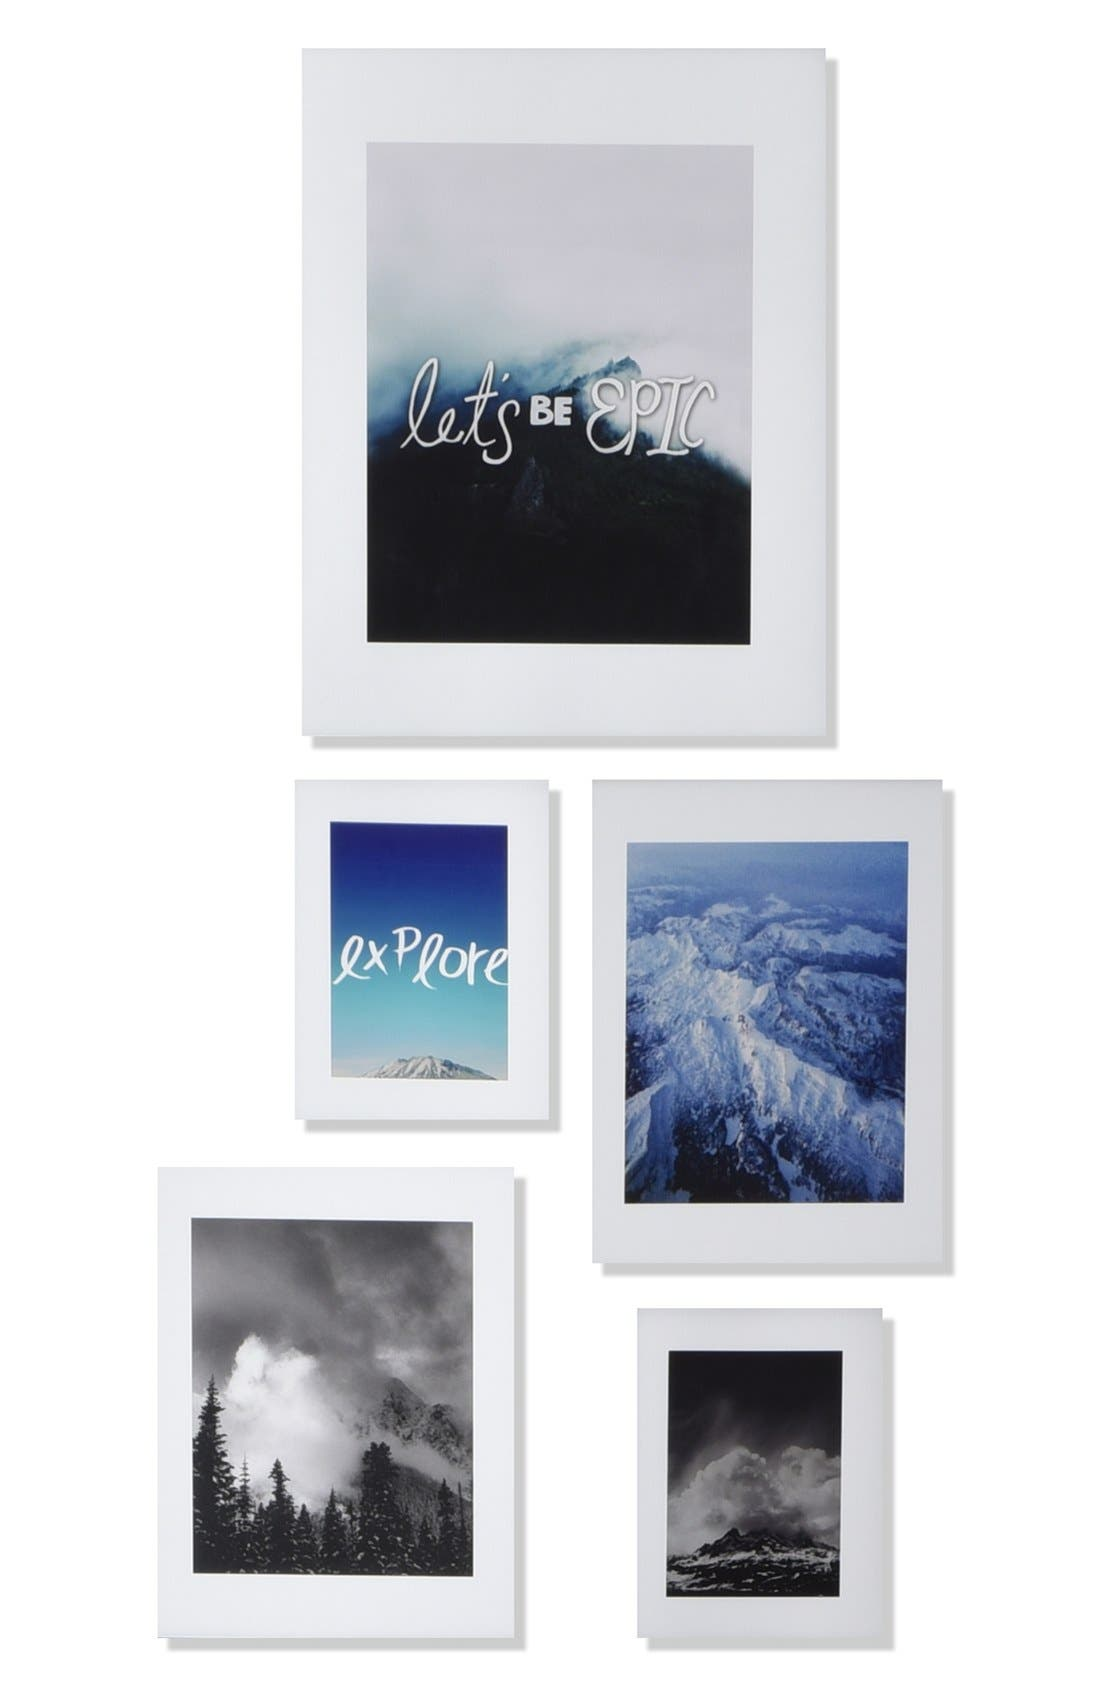 Alternate Image 1 Selected - DENY Designs 'Let's Be Epic' Wall Art Gallery (Set of 5)